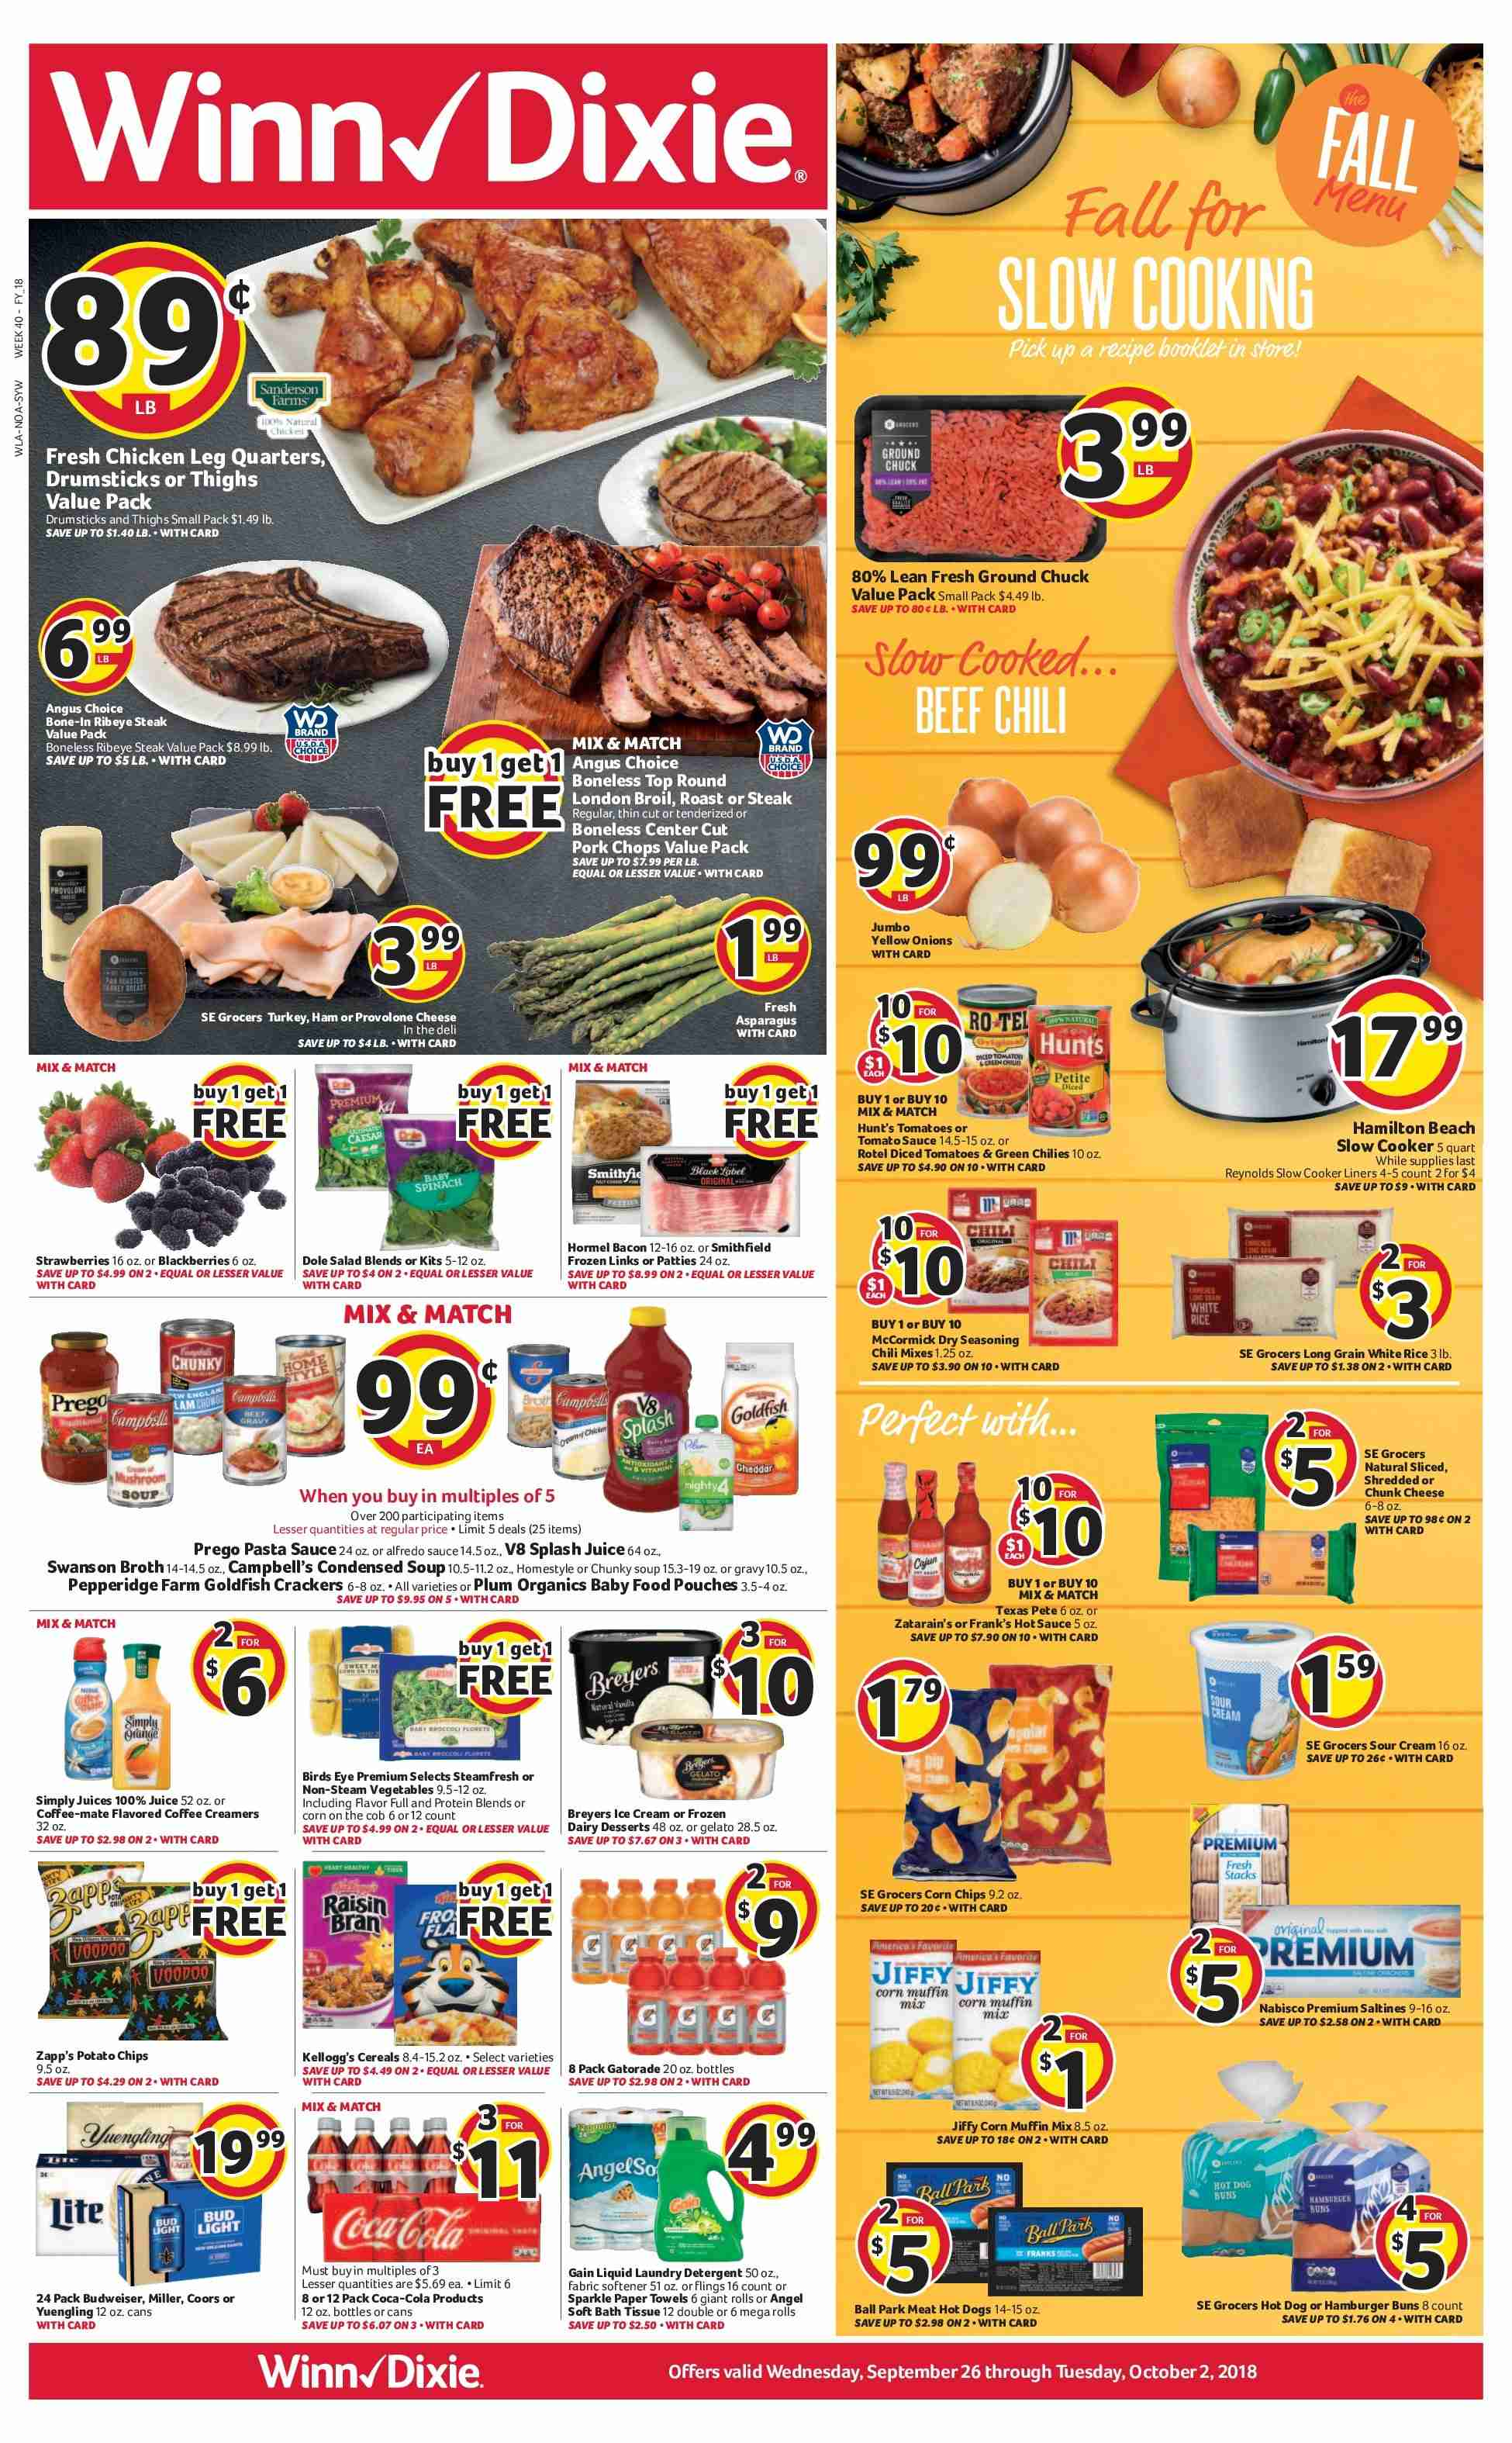 Winn Dixie Flyer - 09.26.2018 - 10.02.2018 - Sales products - alfredo sauce, angel, bath, bath tissue, beef meat, budweiser, campbell's, coca-cola, coffee, coffee-mate, corn, crackers, detergent, frozen, gain, gelato, ground chuck, mate, muffin mix, rice, slow cooker, tomatoes, towel, turkey, yellow onions, ham, hot dog, hot sauce, ice cream, protein, provolone, chicken, paper towel, pasta sauce, onion. Page 1.